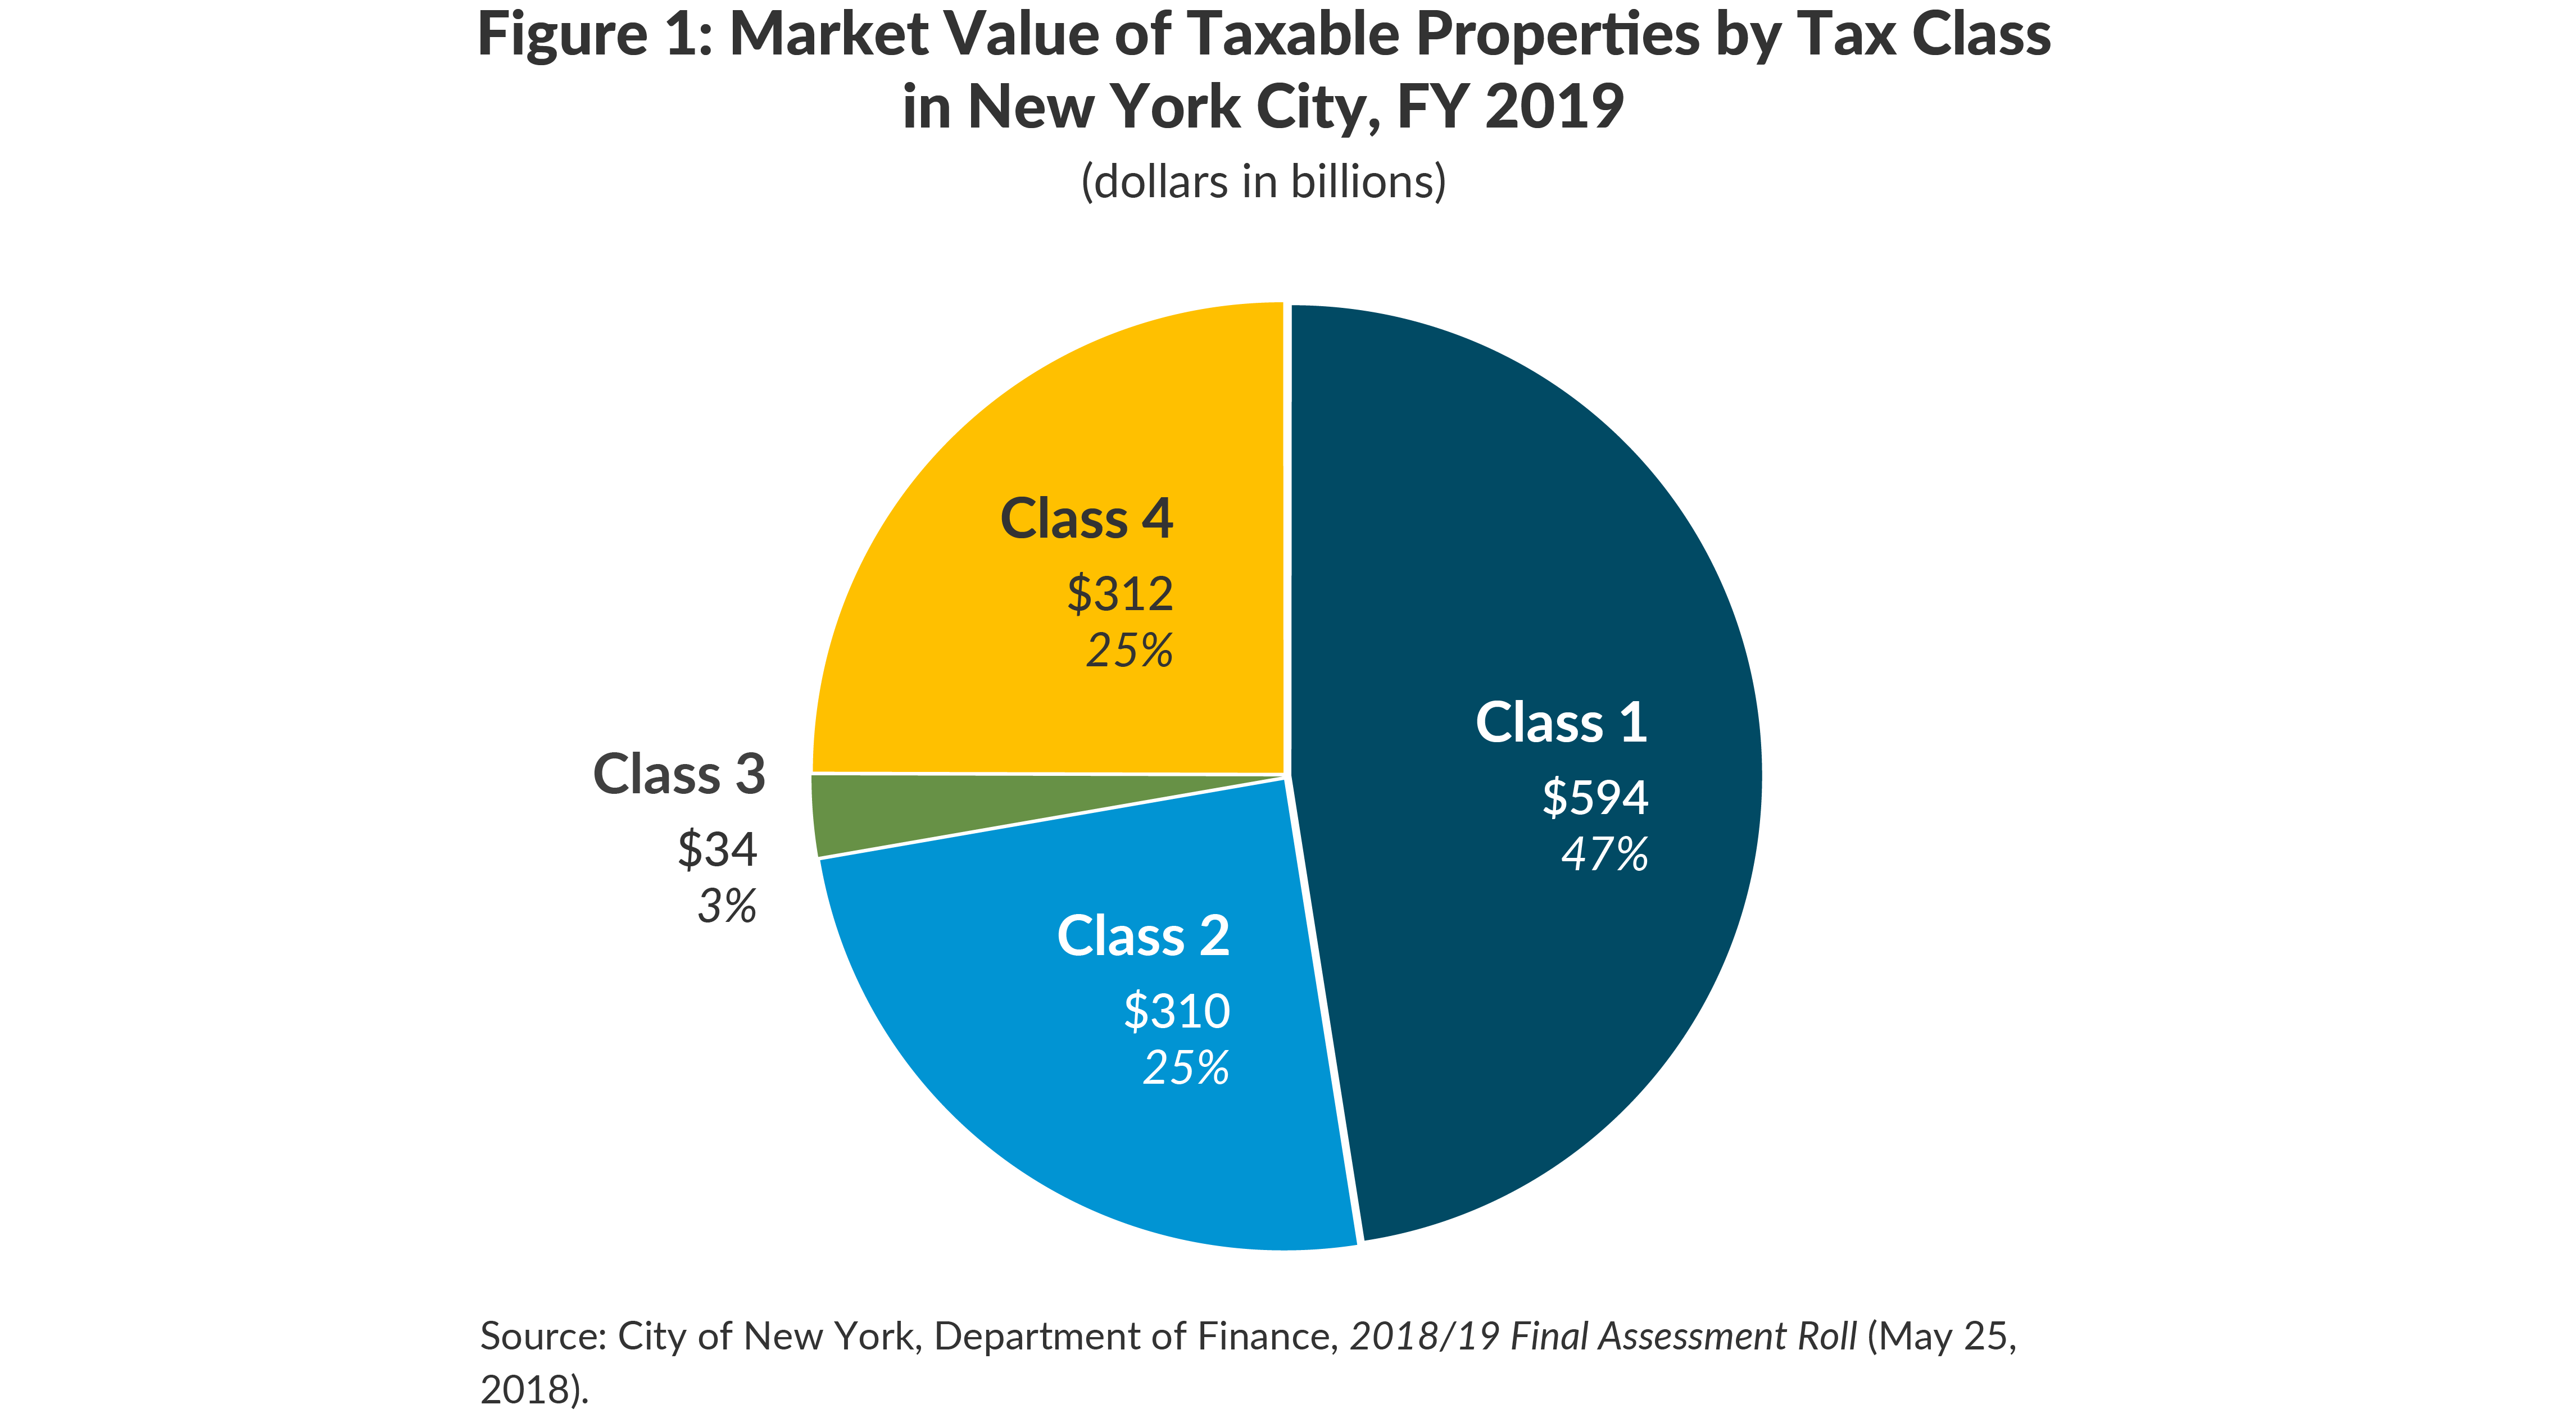 Figure 1: Market Value of Taxable Properties by Tax Class in New York City, FY 2019